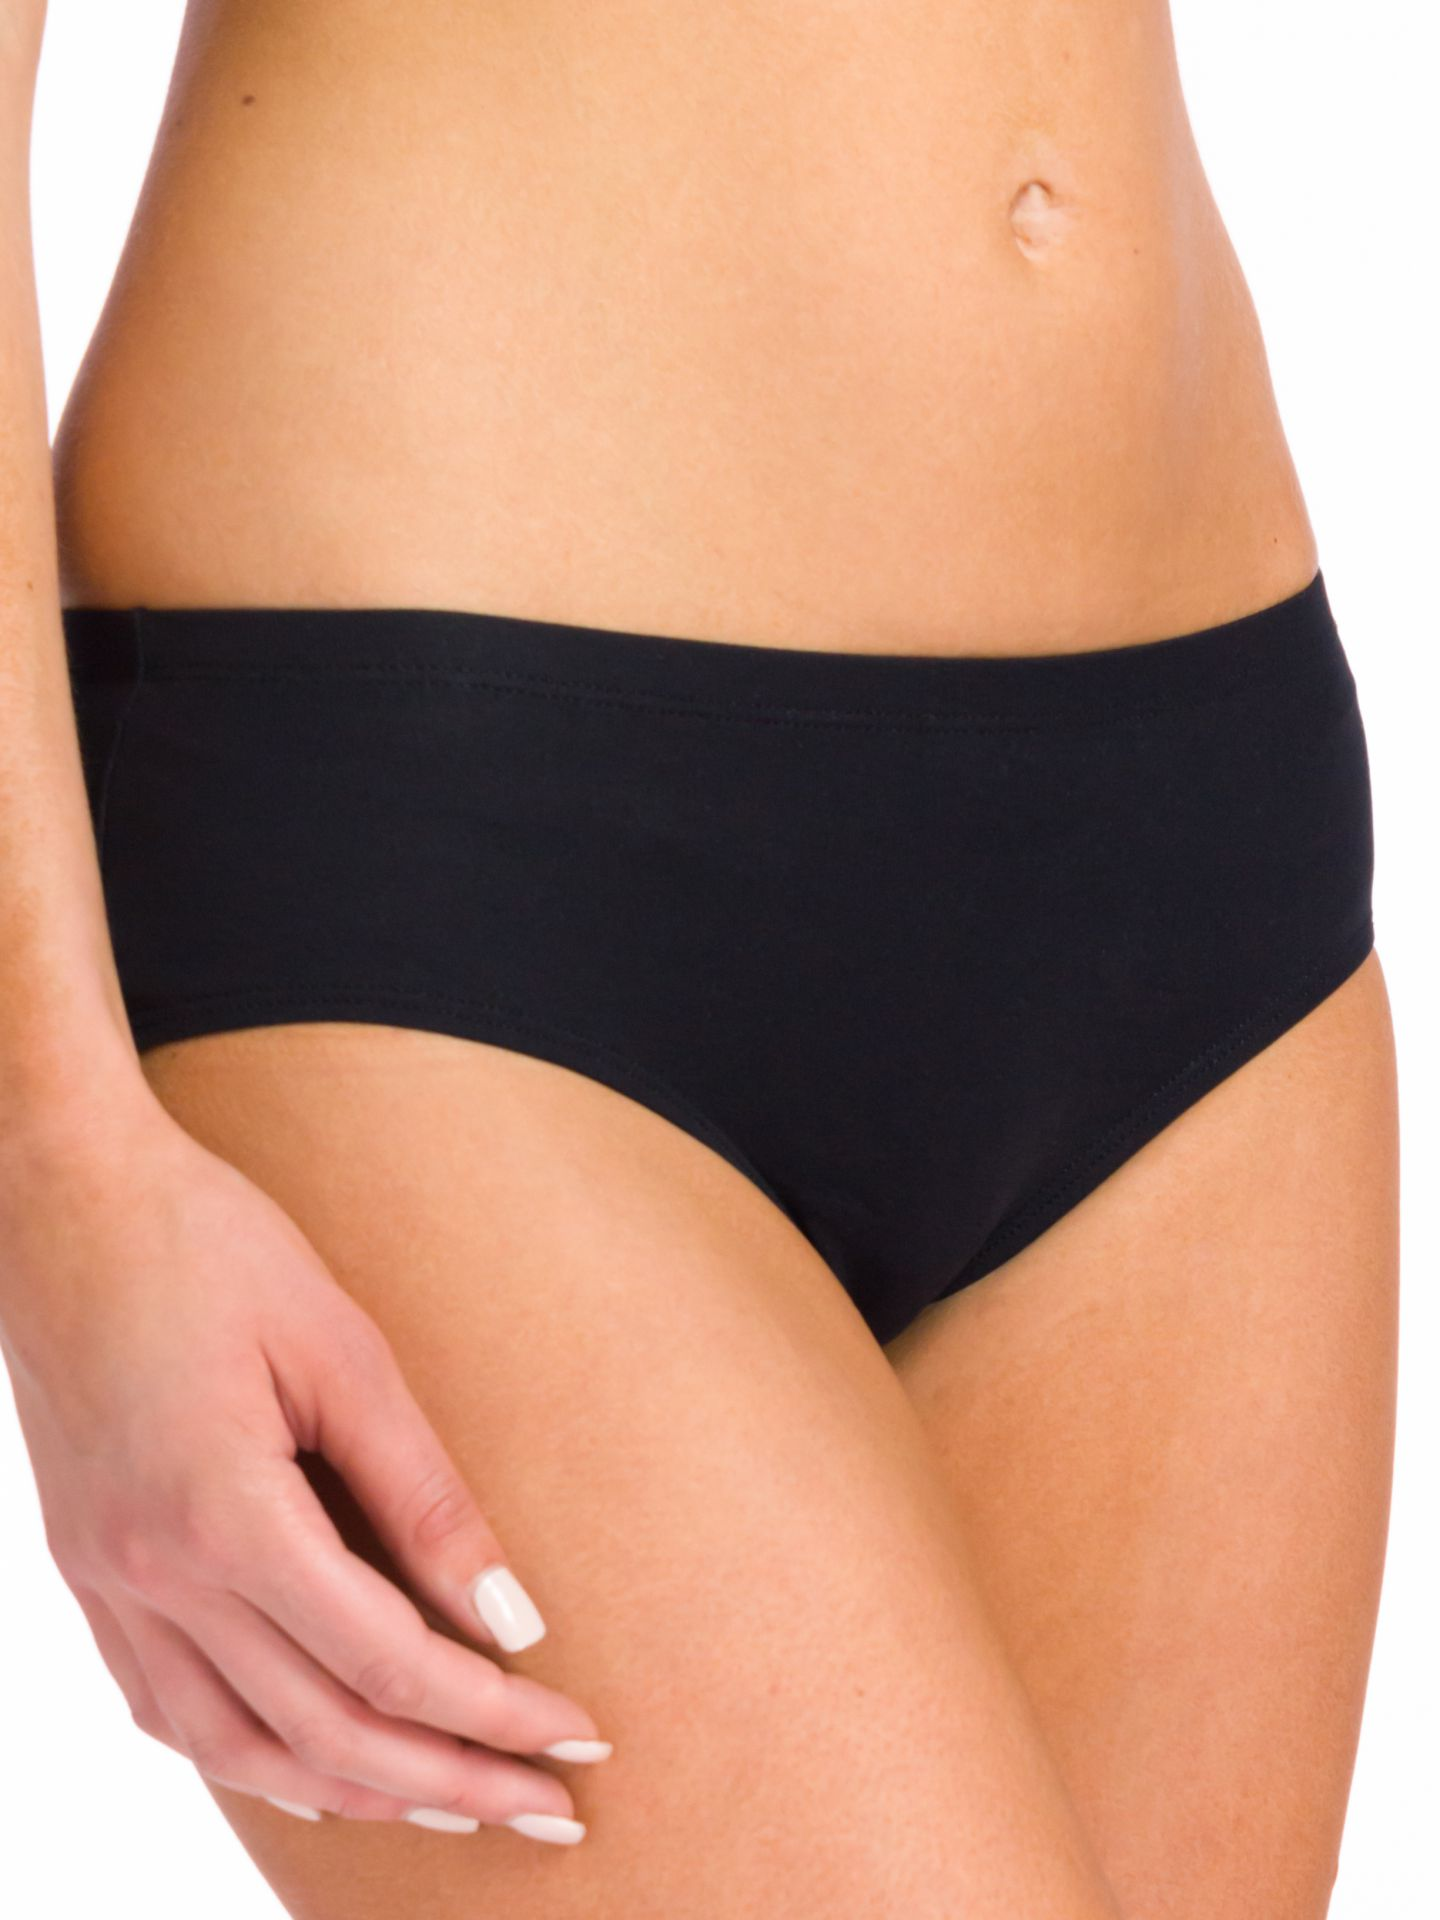 Bodywrappers Women's Low-rise Athletic Briefs - Black - XSmall